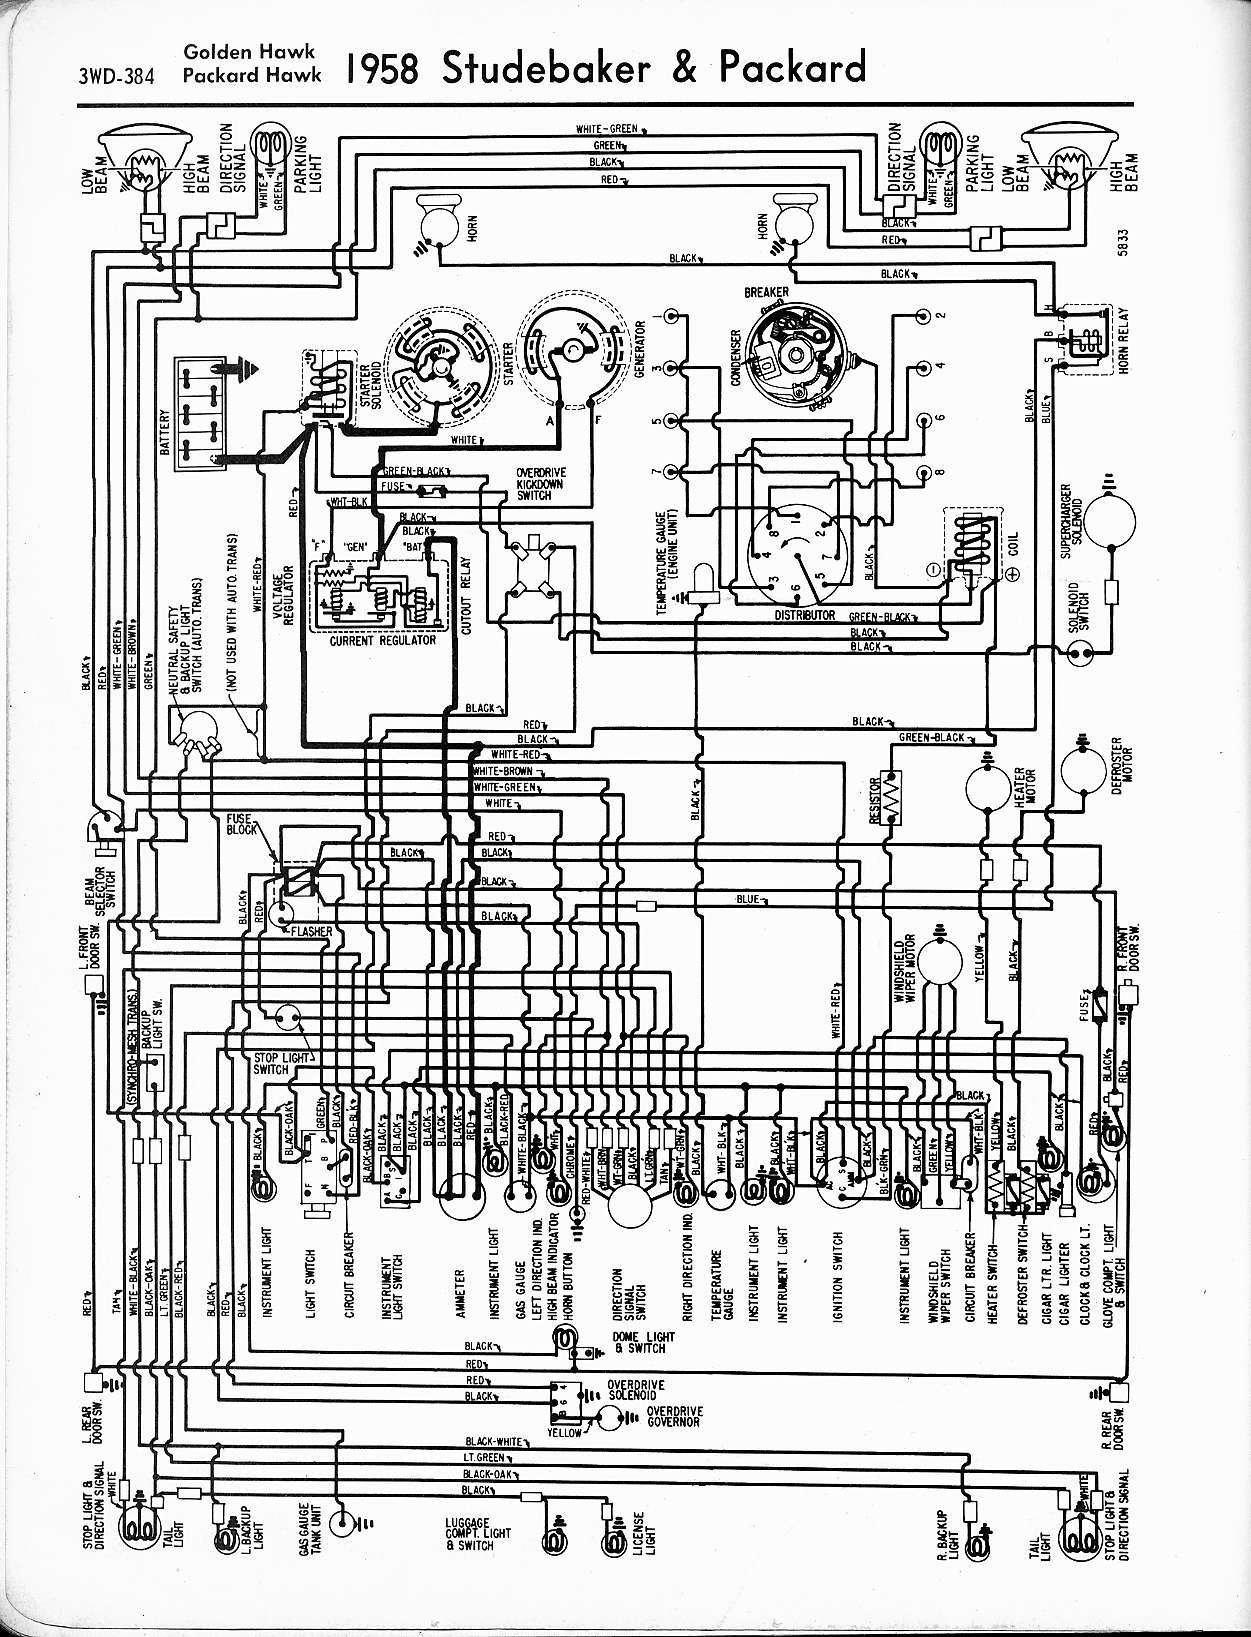 Mercedes Car Wiring Diagram 18 Free Schematic And For Studebaker Technical Help Studebakerparts Of